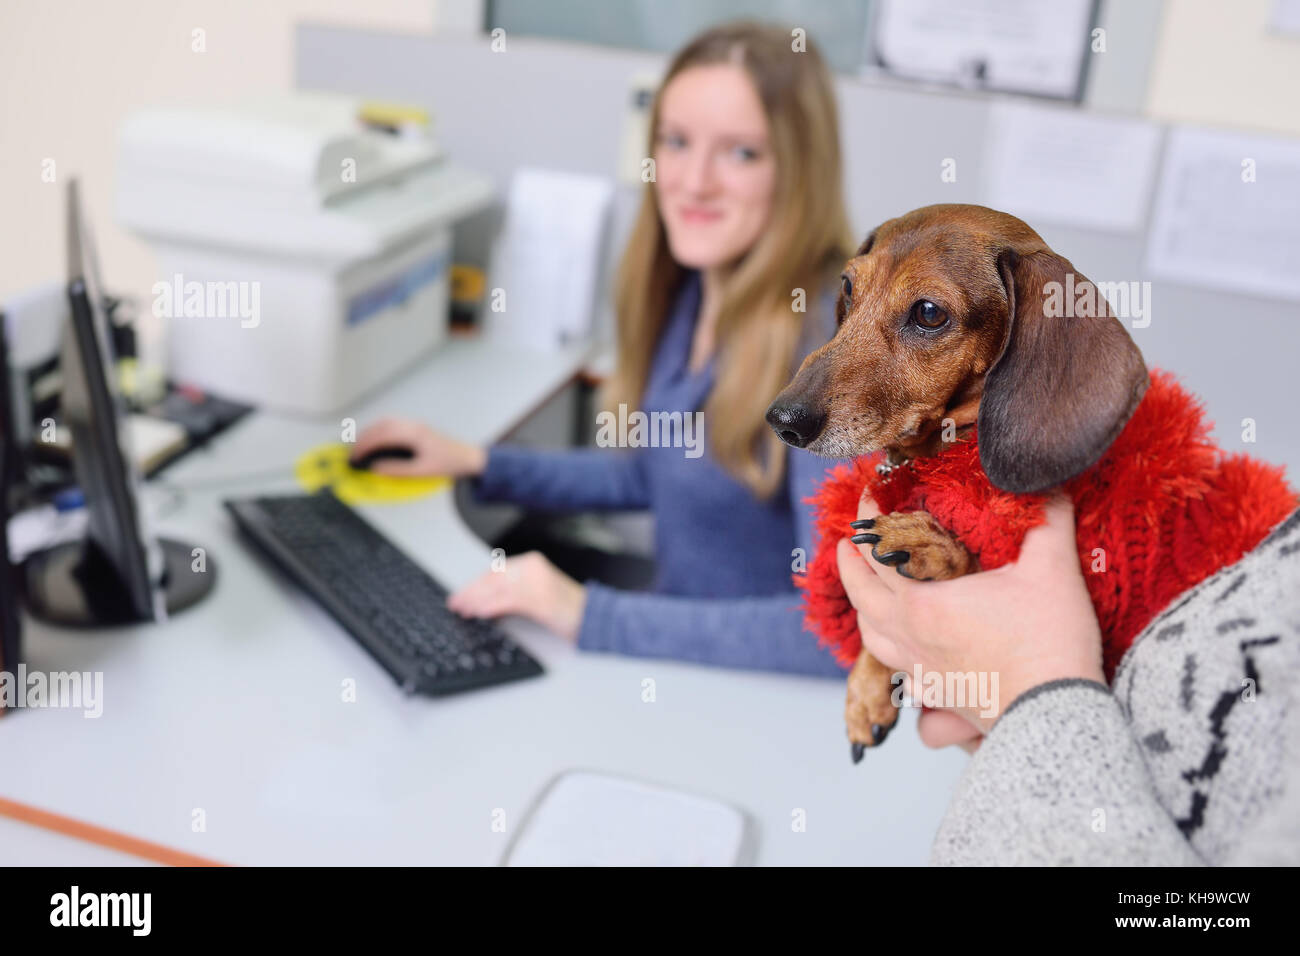 People with their pets are waiting for a medical examination at the veterinary clinic. Animal Health - Stock Image